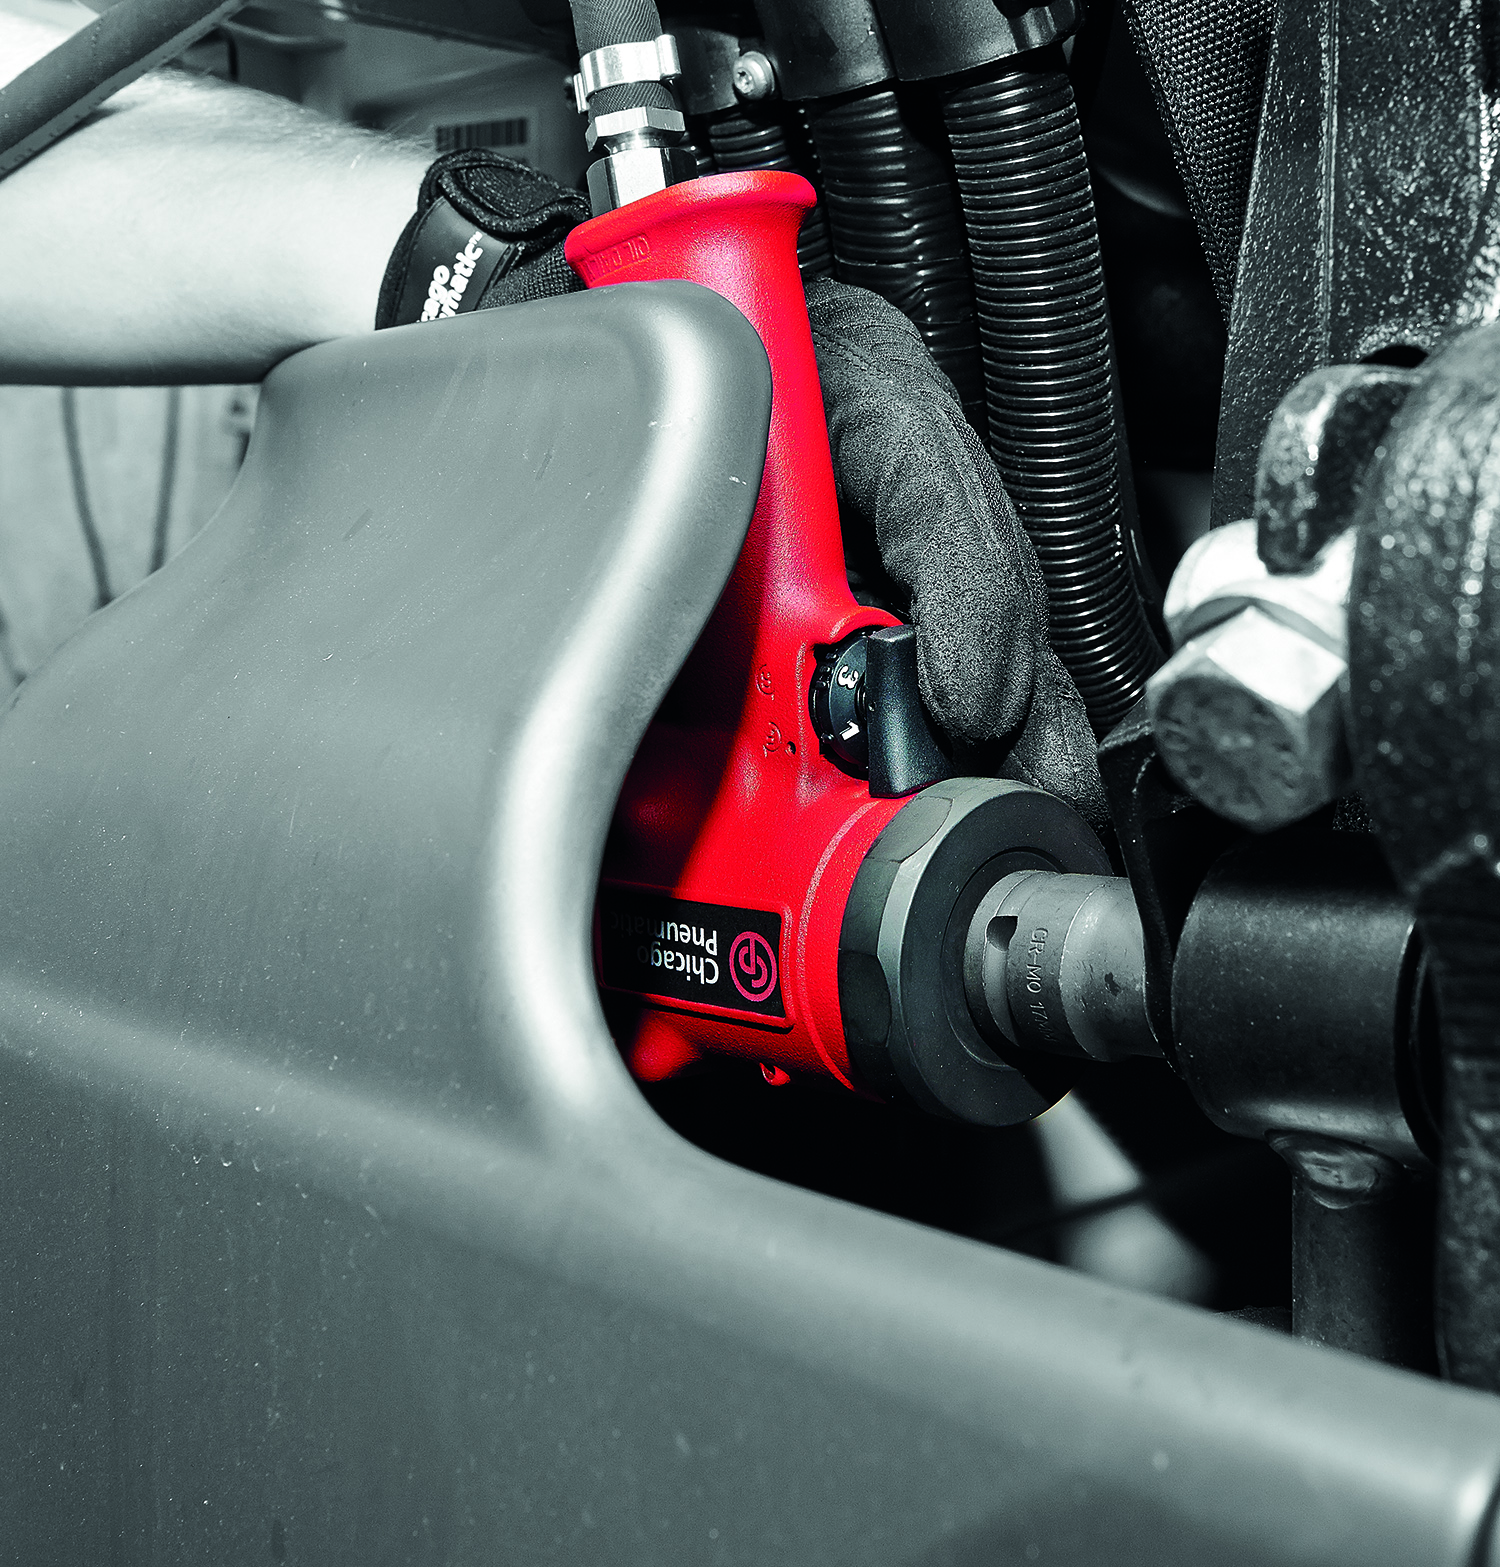 Chicago Pneumatic impact wrench has power